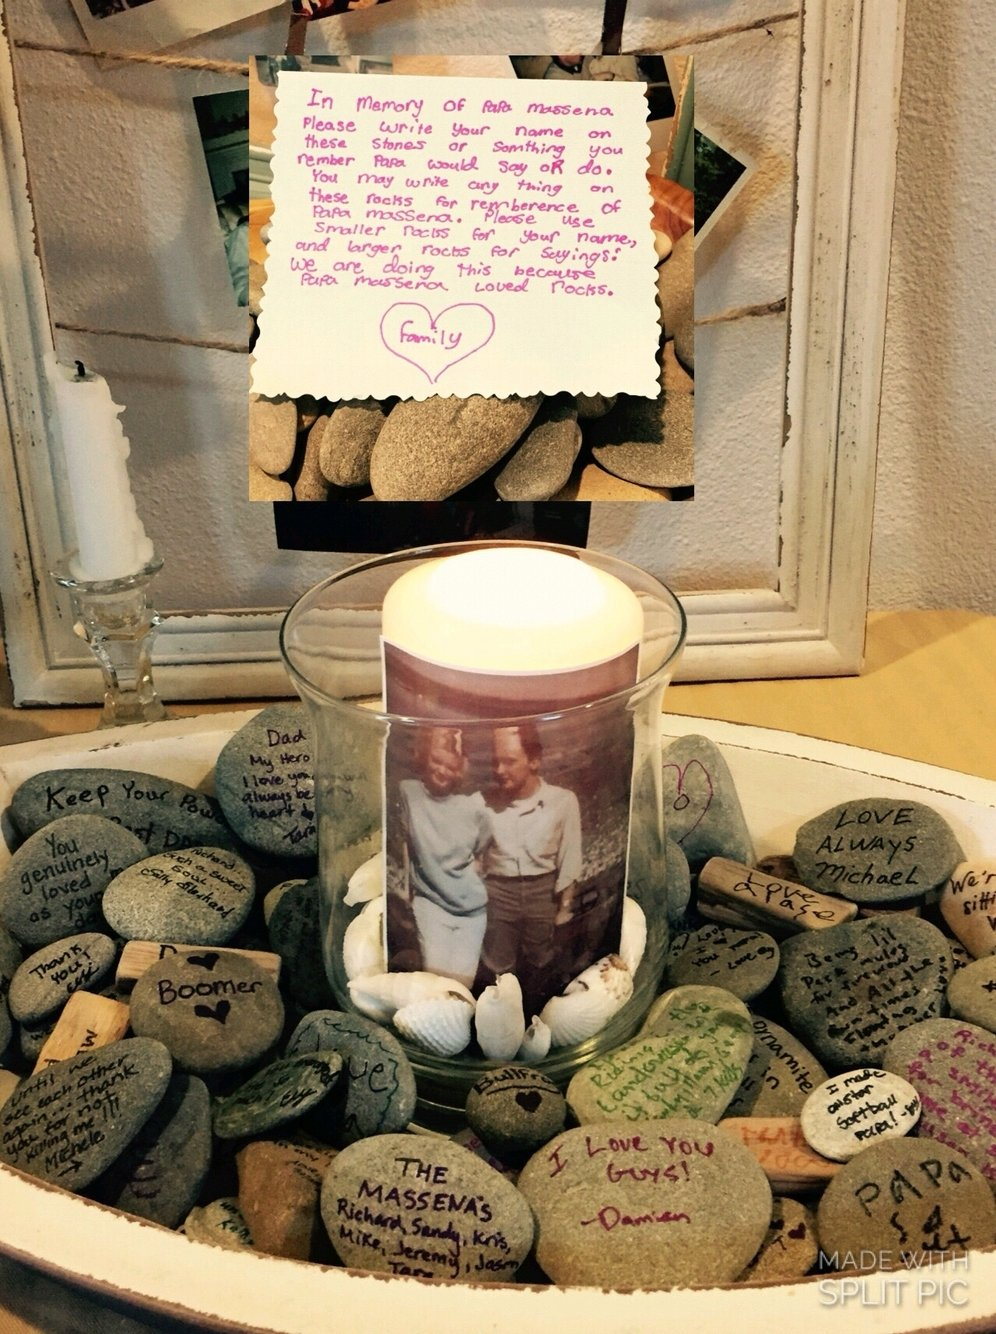 10 Most Popular Ideas For A Memorial Service memory stones guest book stones funeral evalyn wrote a note to 2021